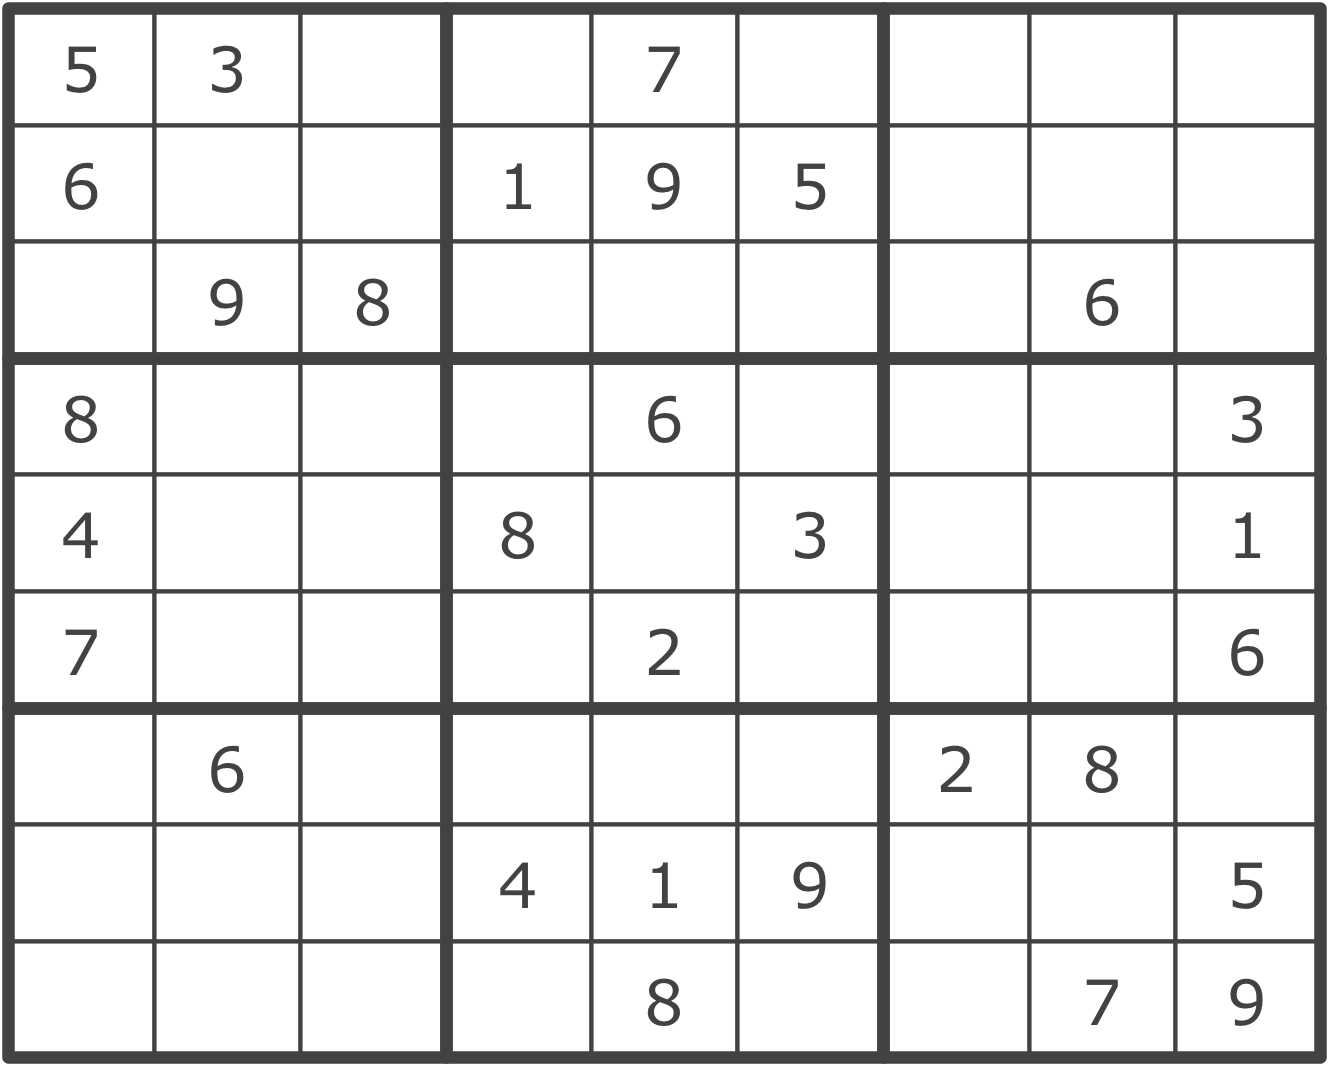 sudoku solver learning javascript data structures and algorithms